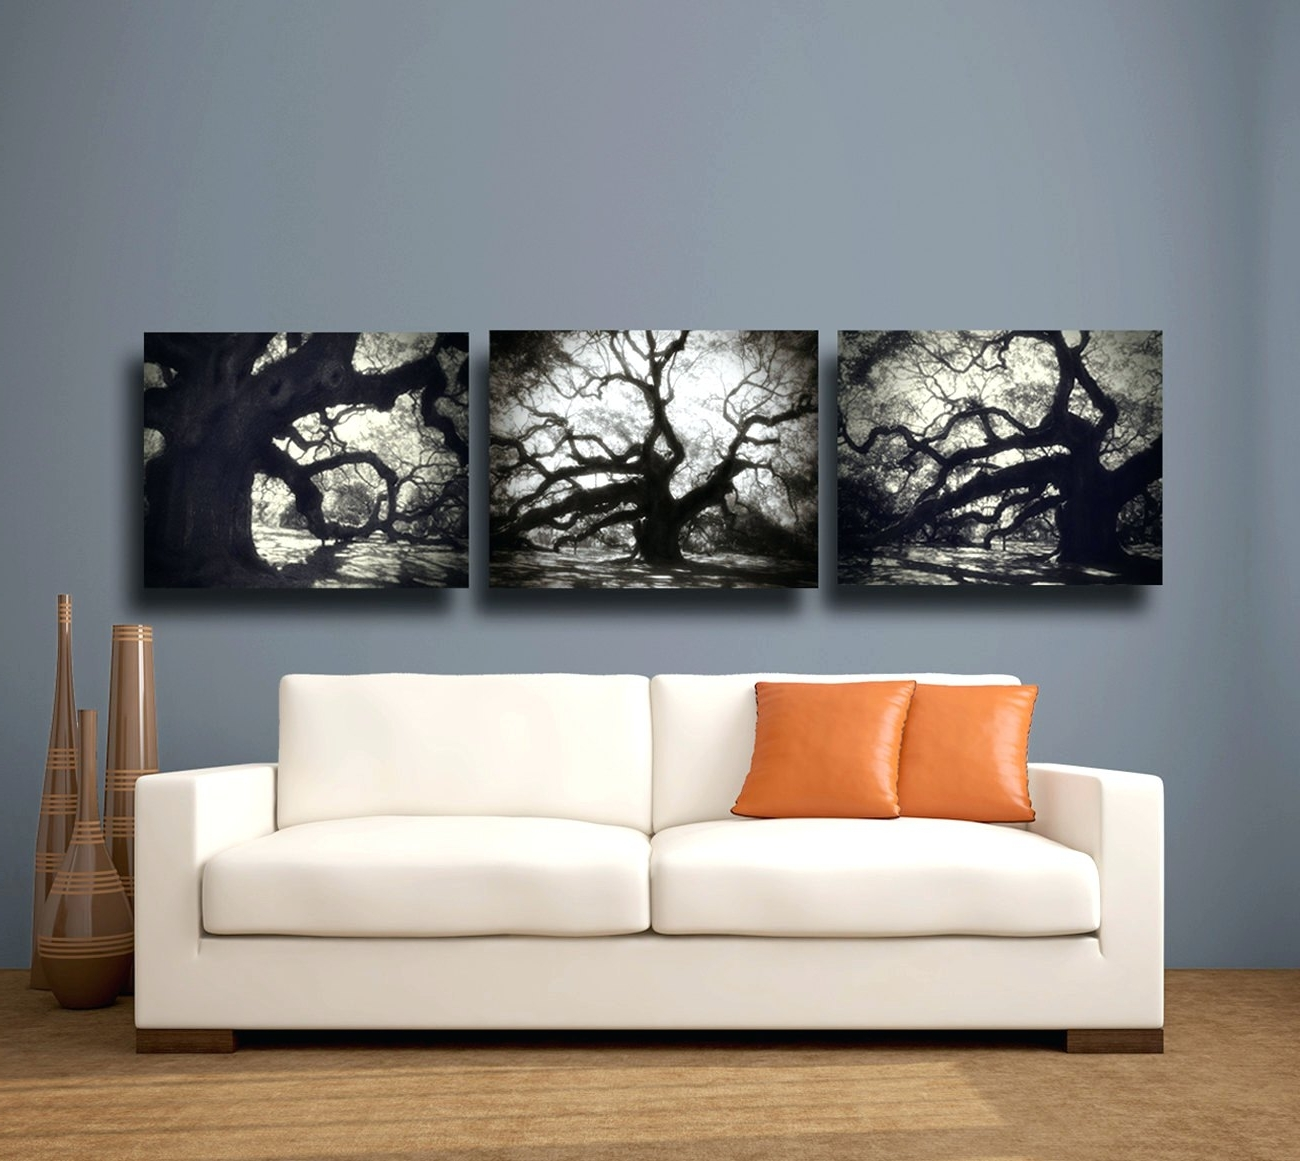 Well Liked Wall Arts ~ 7 Piece Canvas Wall Art Target 7 Piece Canvas Art With Regard To Canvas Wall Art At Target (View 15 of 15)